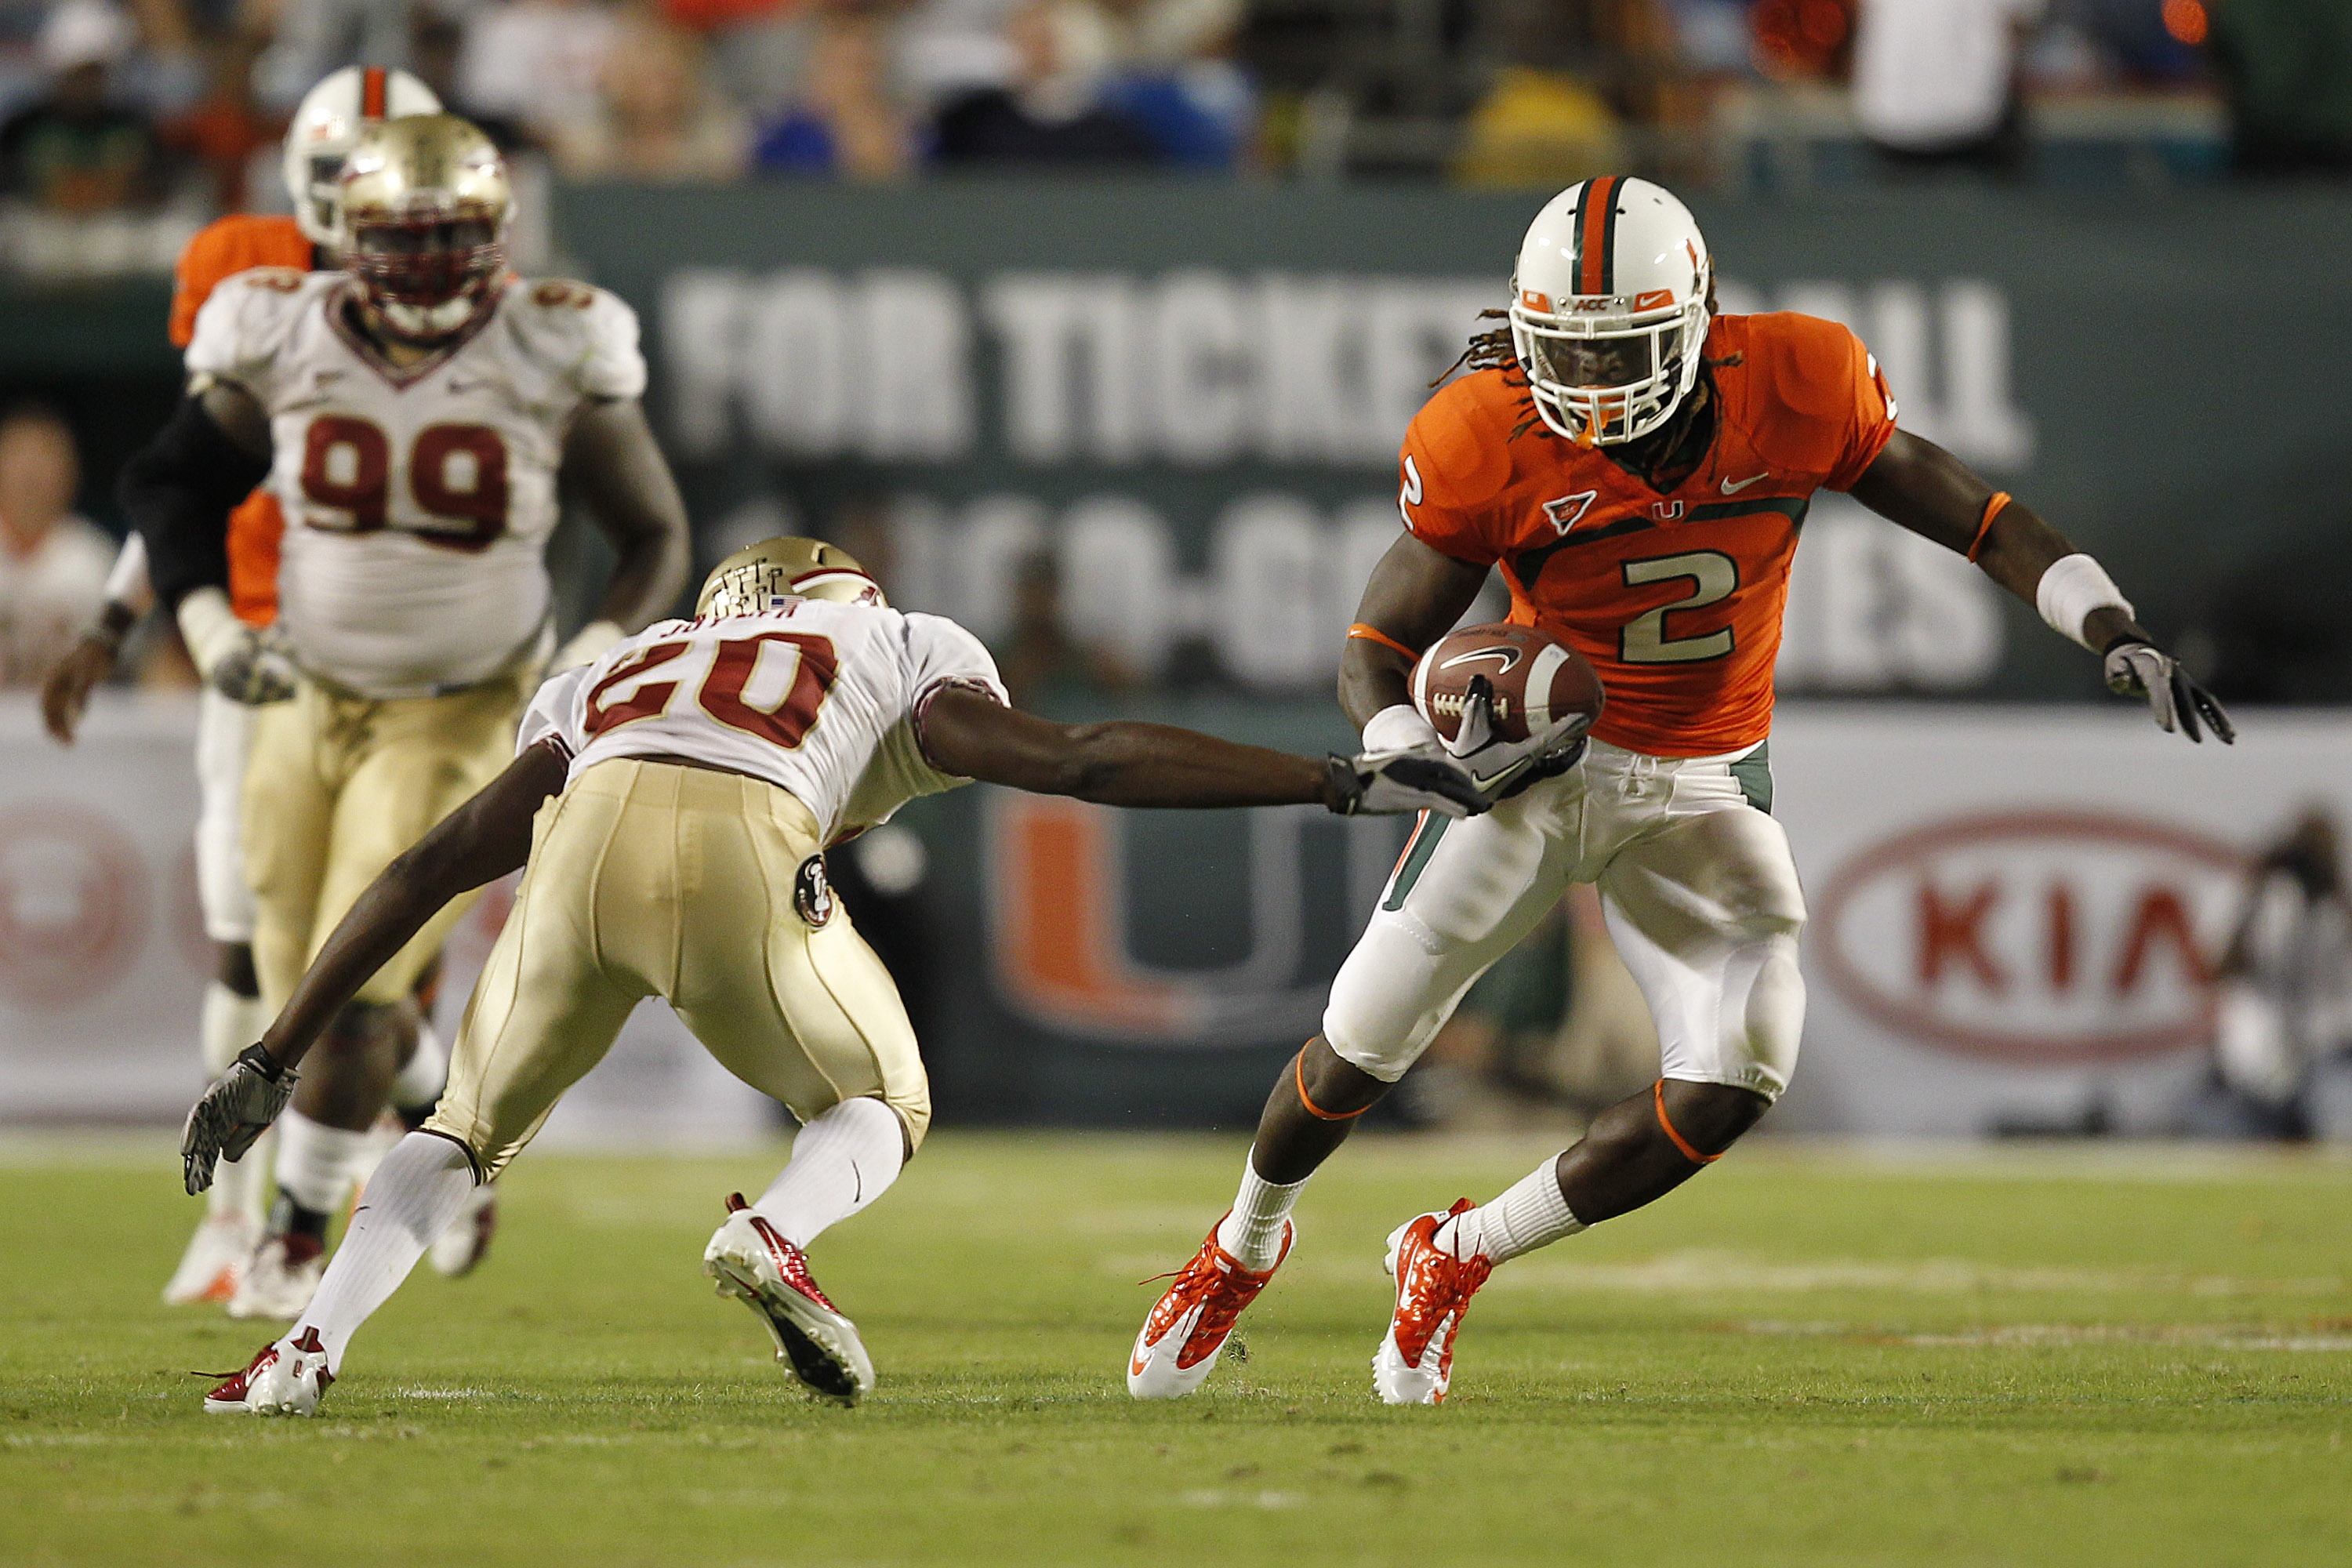 MIAMI, FL - OCTOBER 9: Graig Cooper #2 of the Miami Hurricanes runs with the ball and eludes the tackloe of Lamarcus Joyner #20 of the Florida State Seminoles on October 9, 2010 at Sun Life Stadium in Miami, Florida. (Photo by Joel Auerbach/Getty Images)